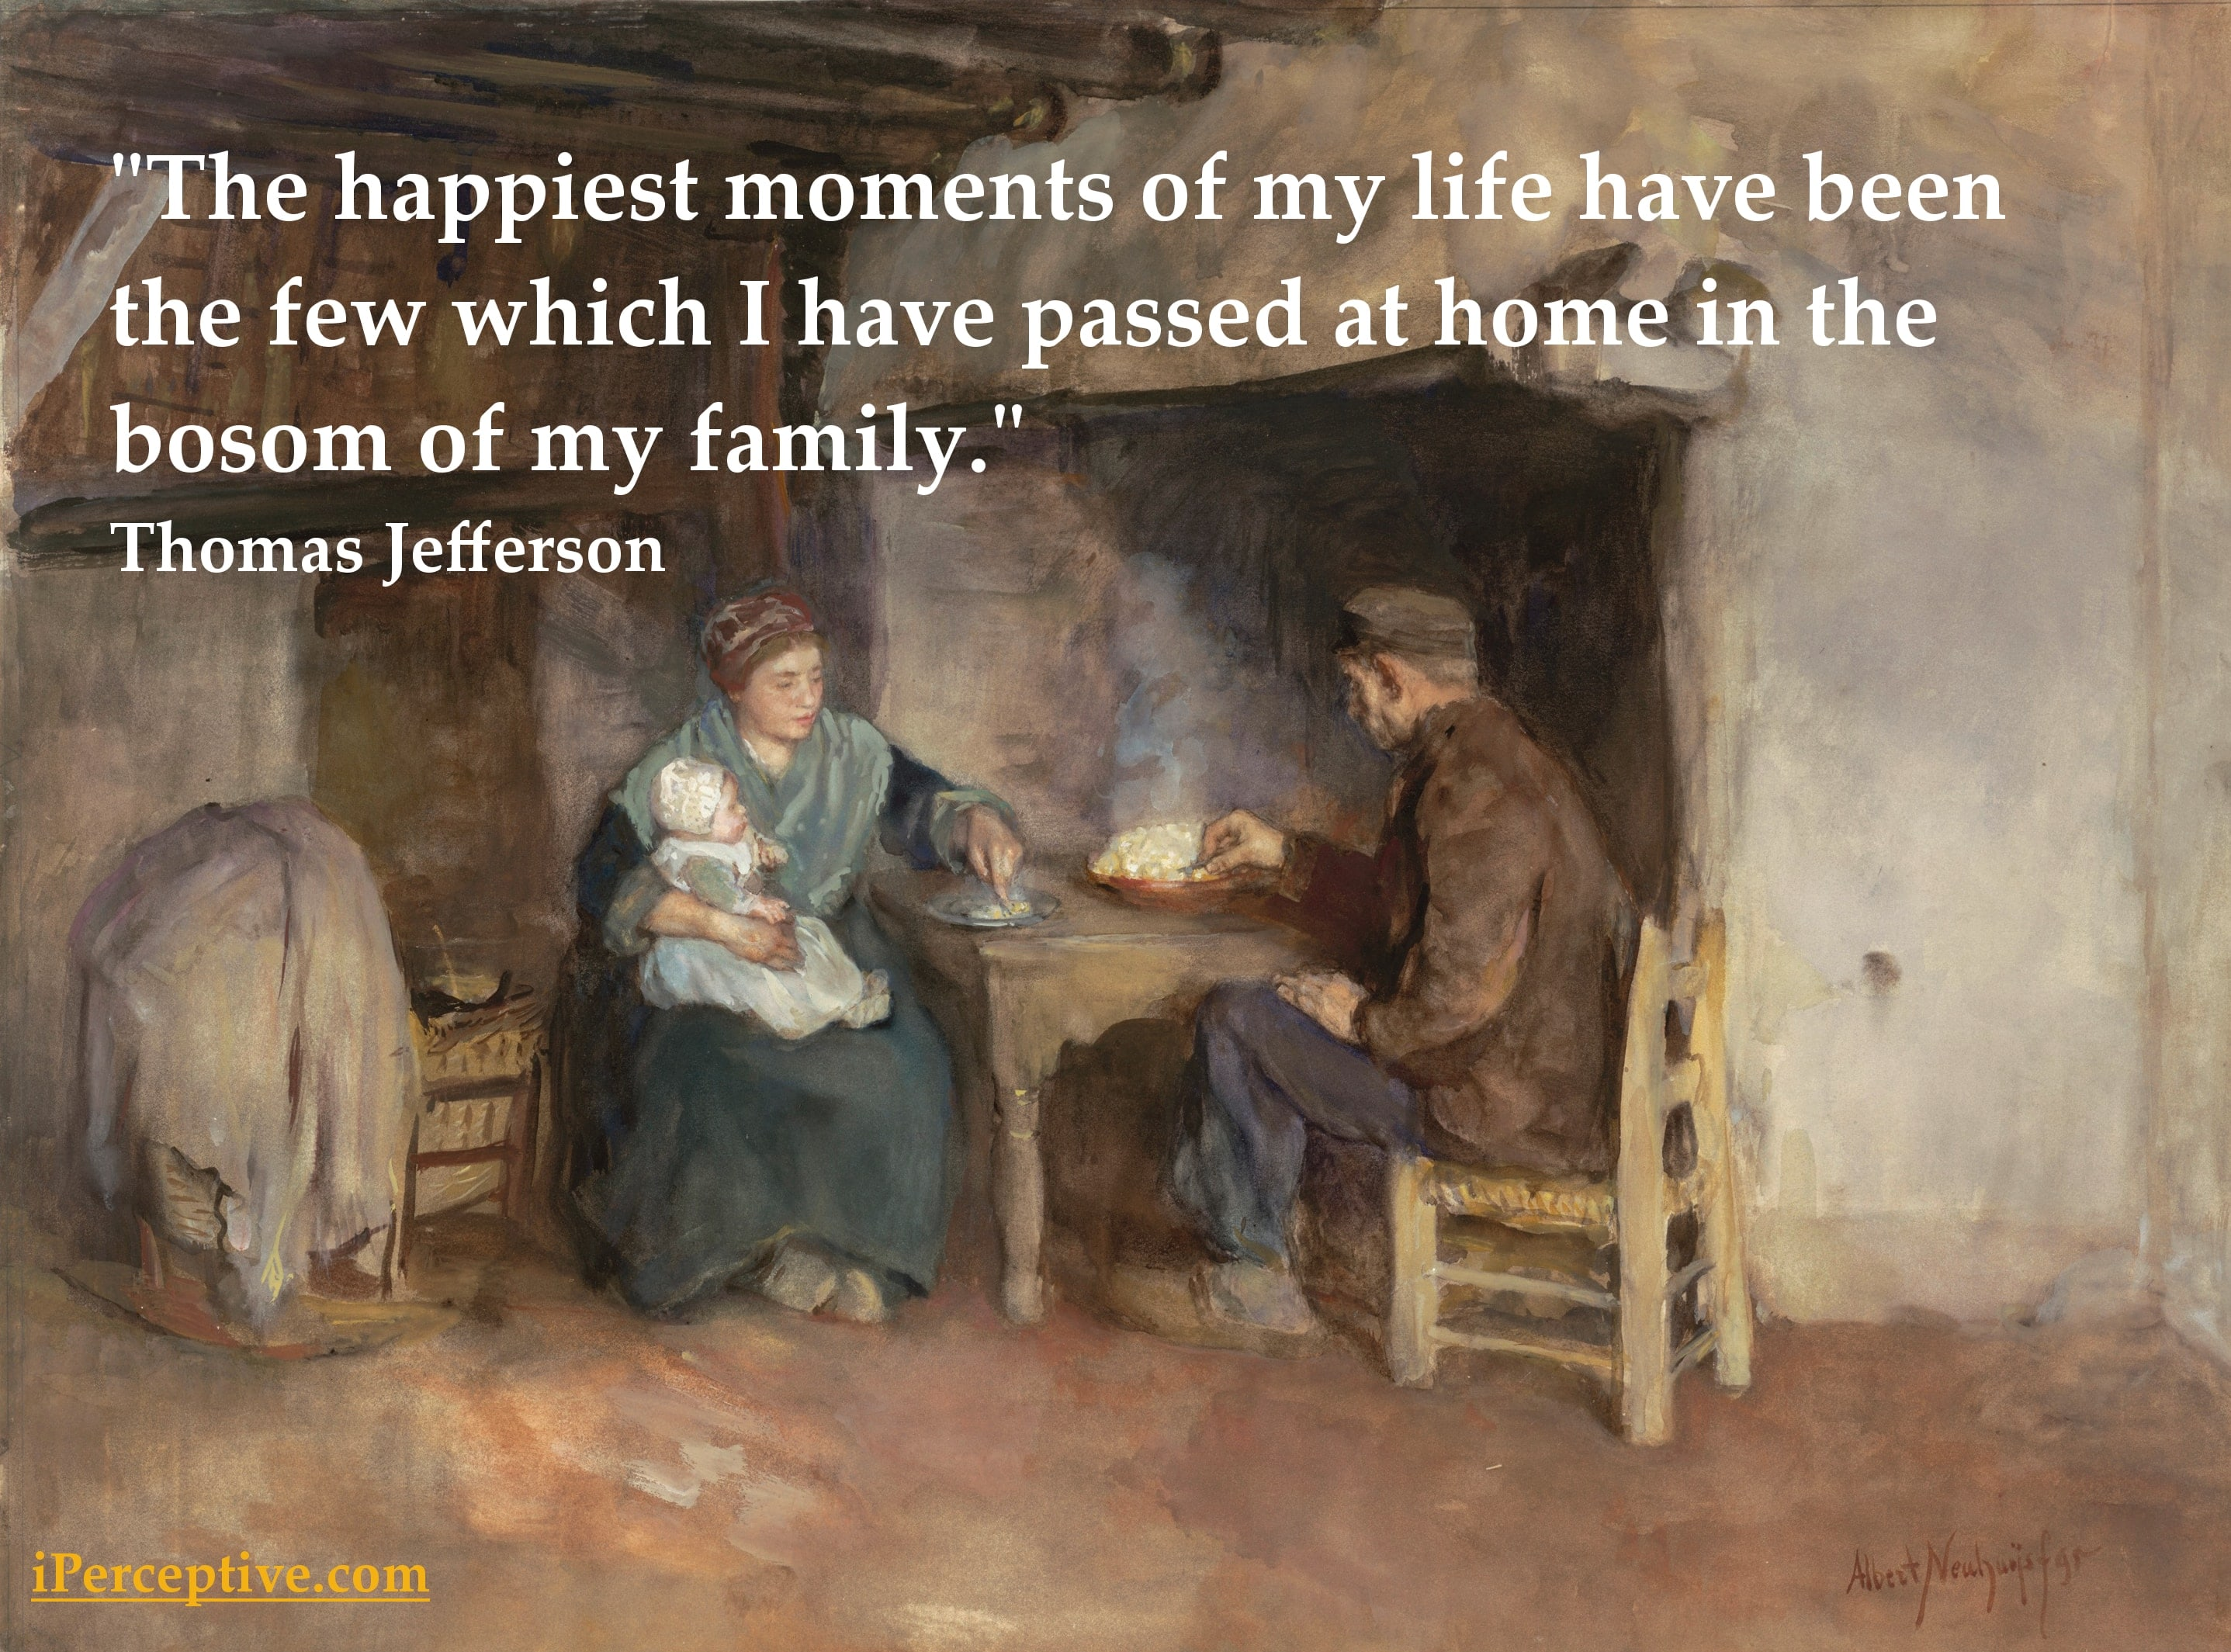 Thomas Jefferson Quote: The Happiest moments of my life have been...